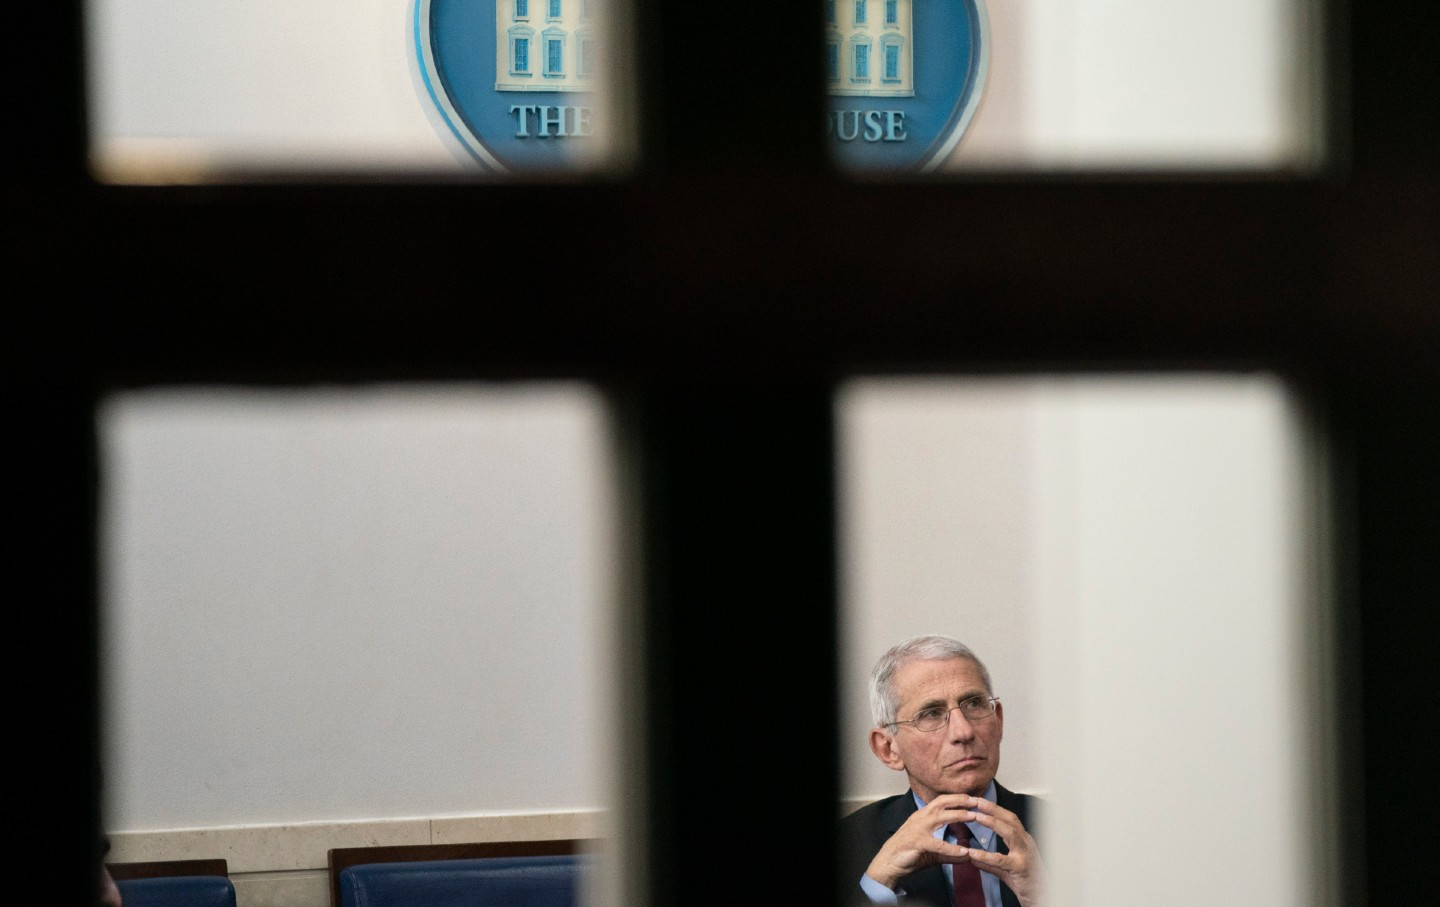 Dr. Anthony Fauci, pictured through a window, listens to a press briefing.